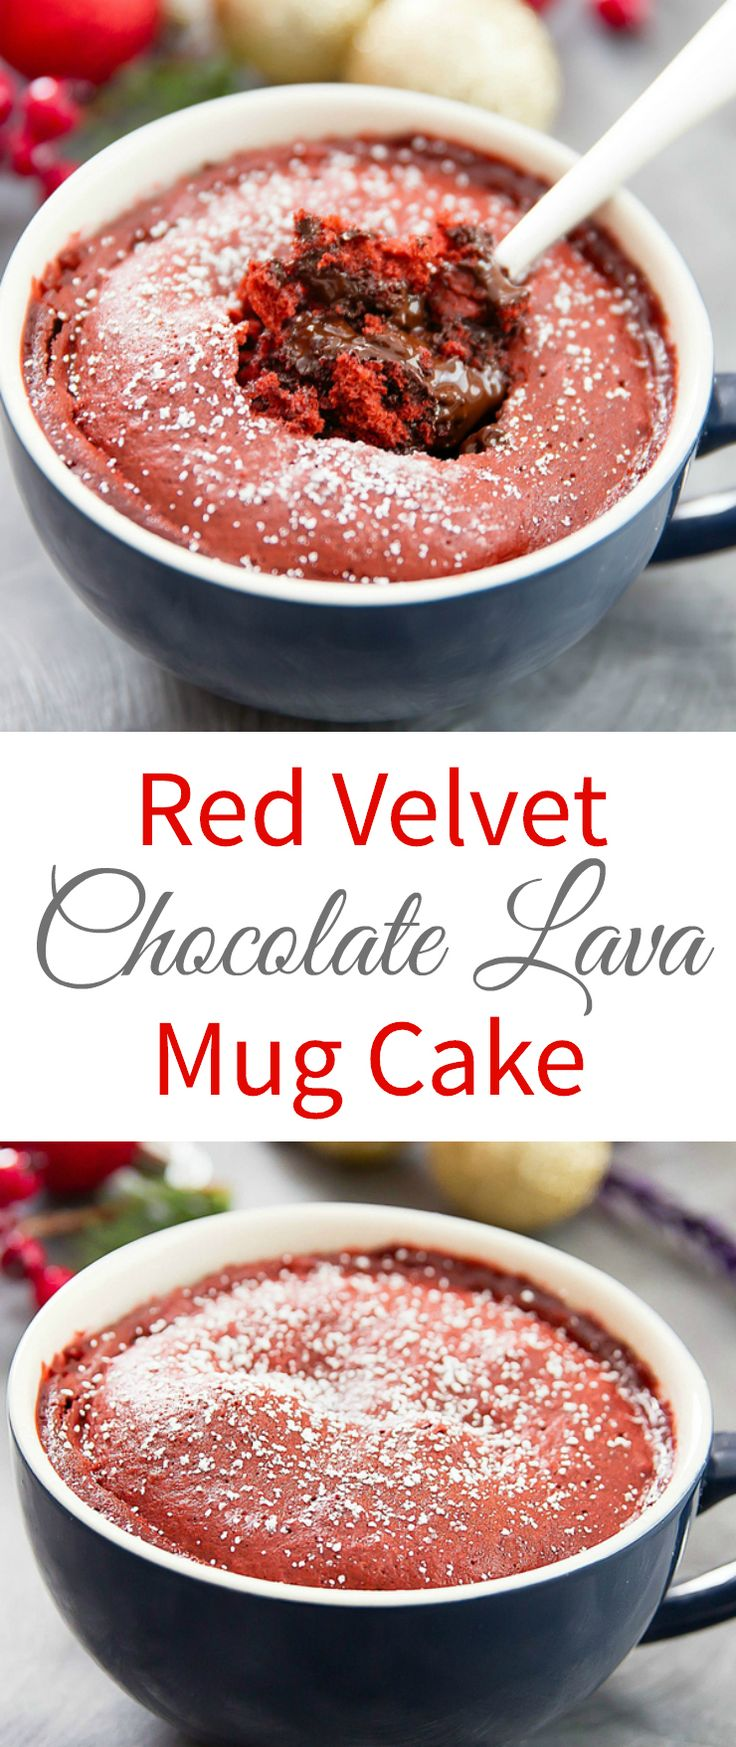 This single serving red velvet mug cake has a molten lava chocolate center. It's a festive cake for the holidays that is ready in just a few minutes. Red Velvet Chocolate Lava Mug Cake - Kirbie's Cravings.